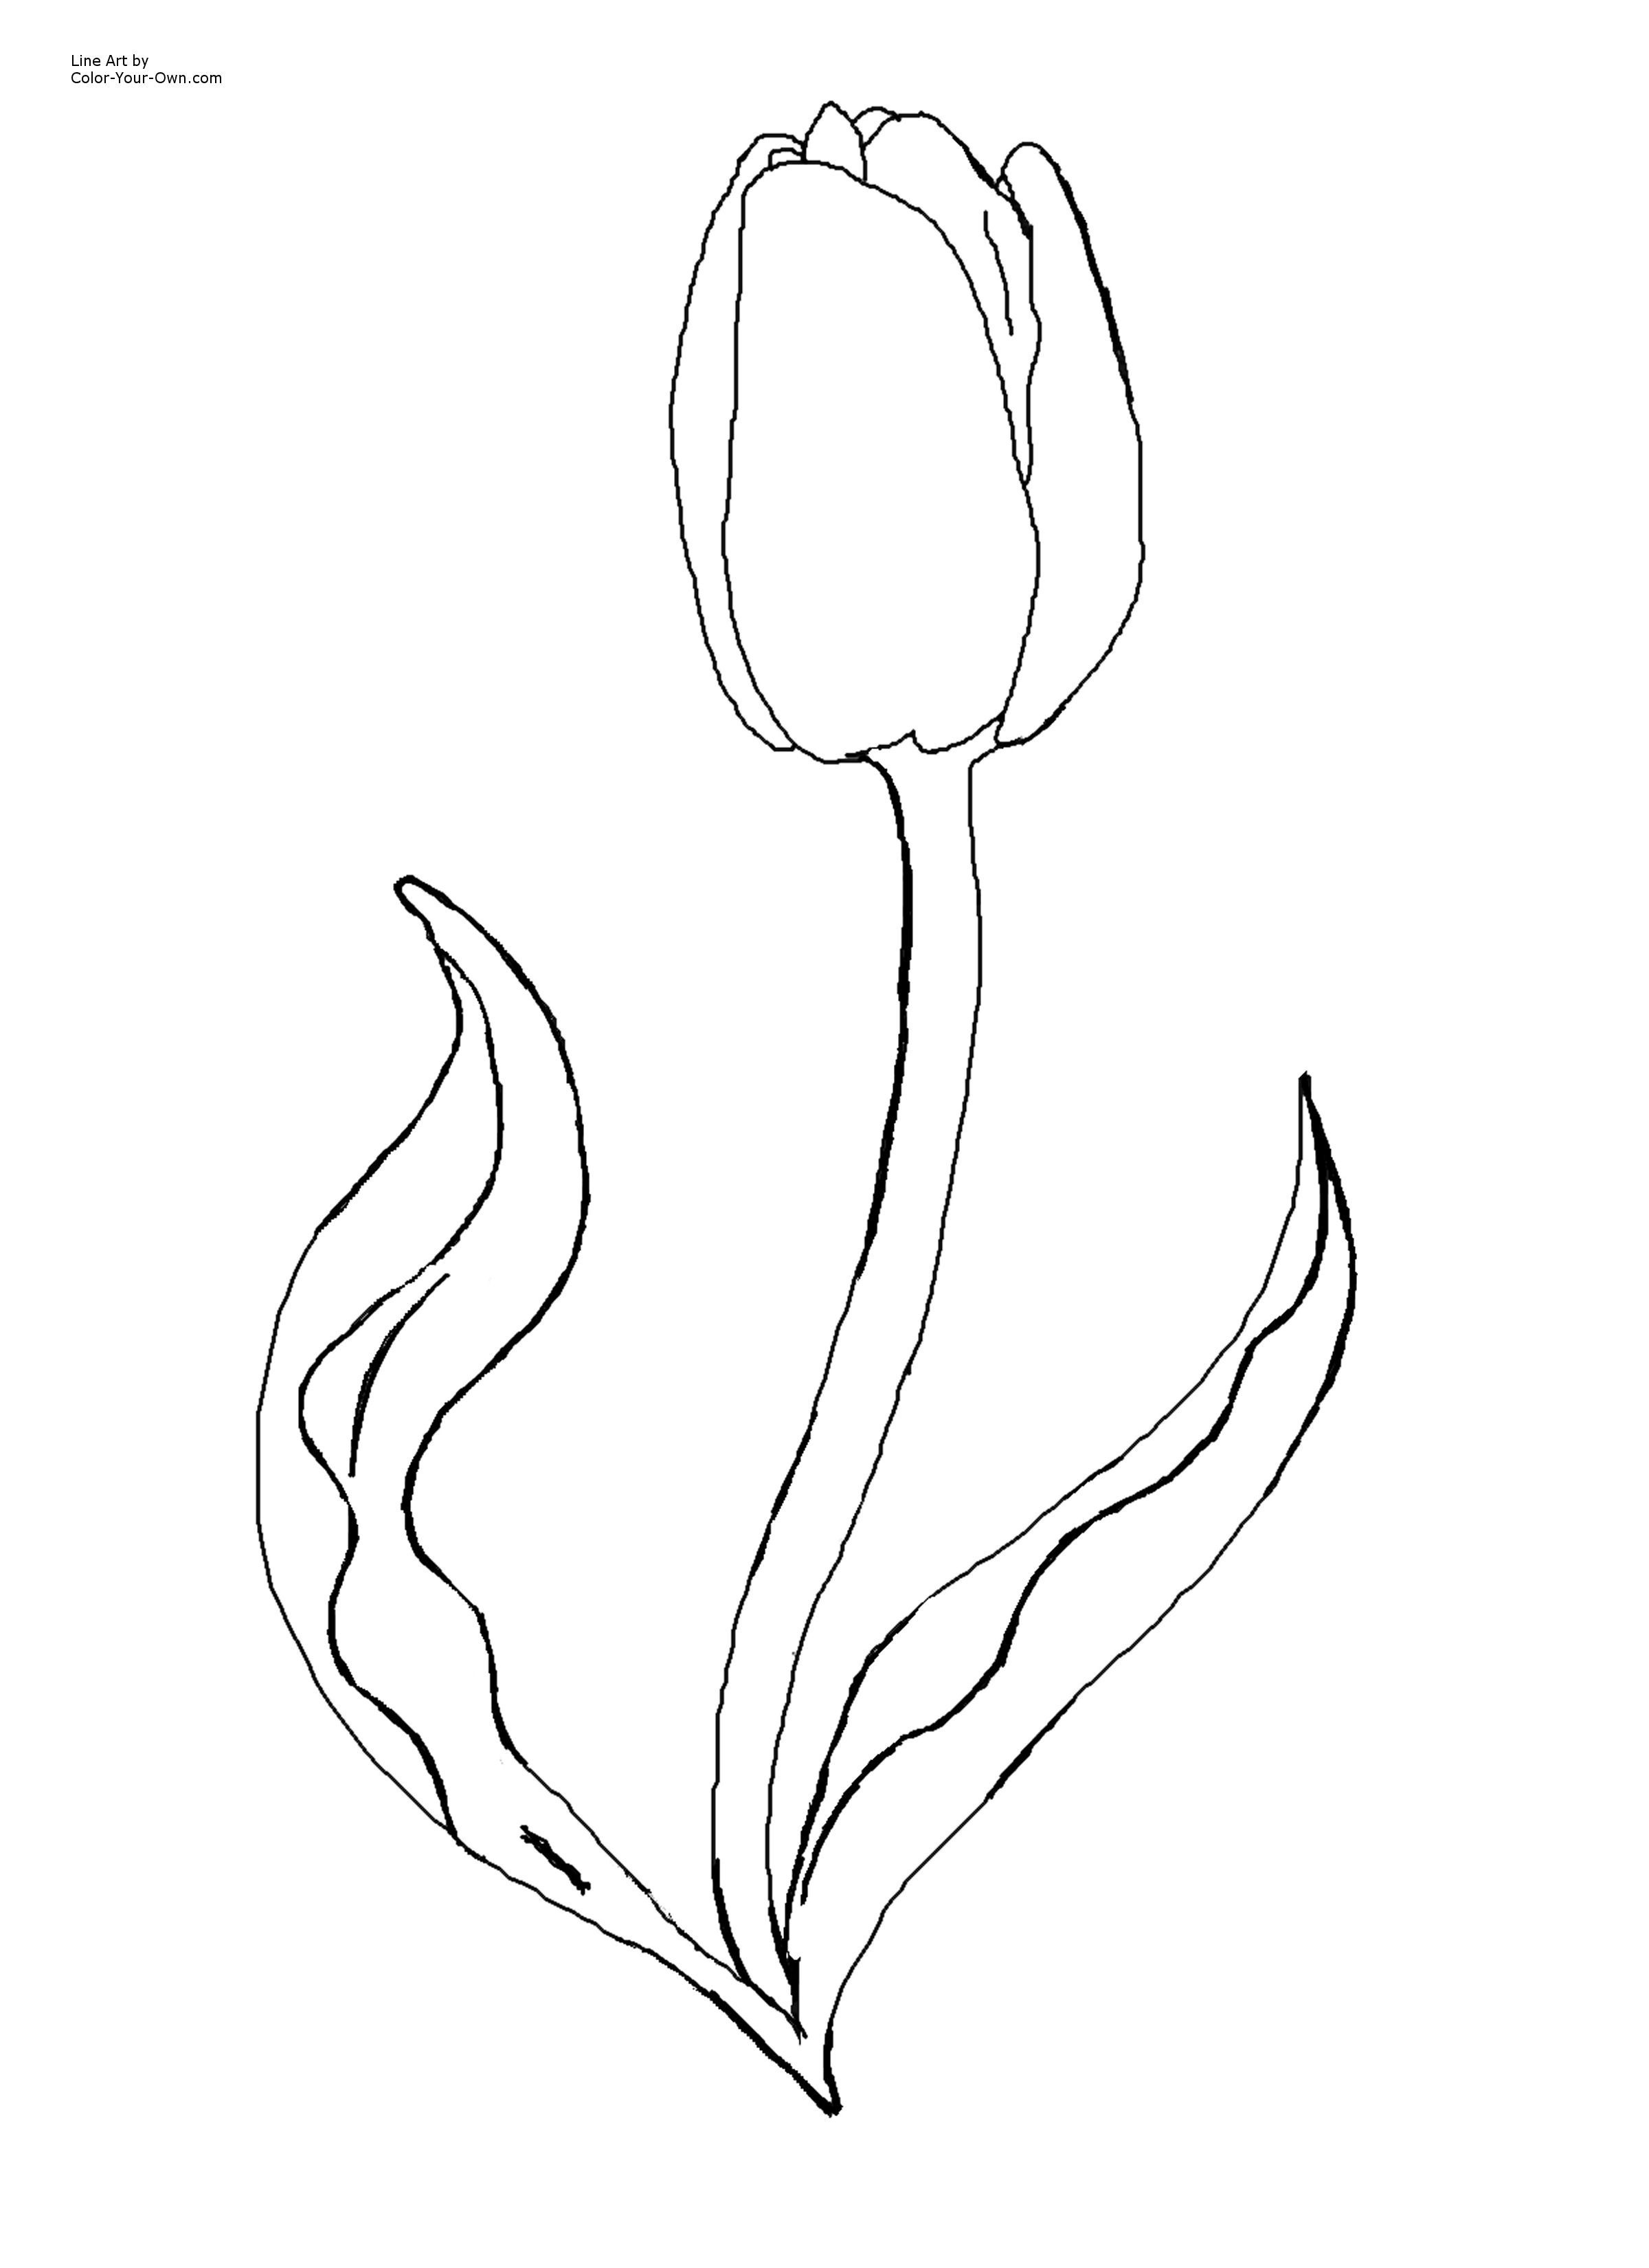 Flower Page Printable Coloring Sheets | Spring Flowers Coloring - Free Printable Tulip Coloring Pages